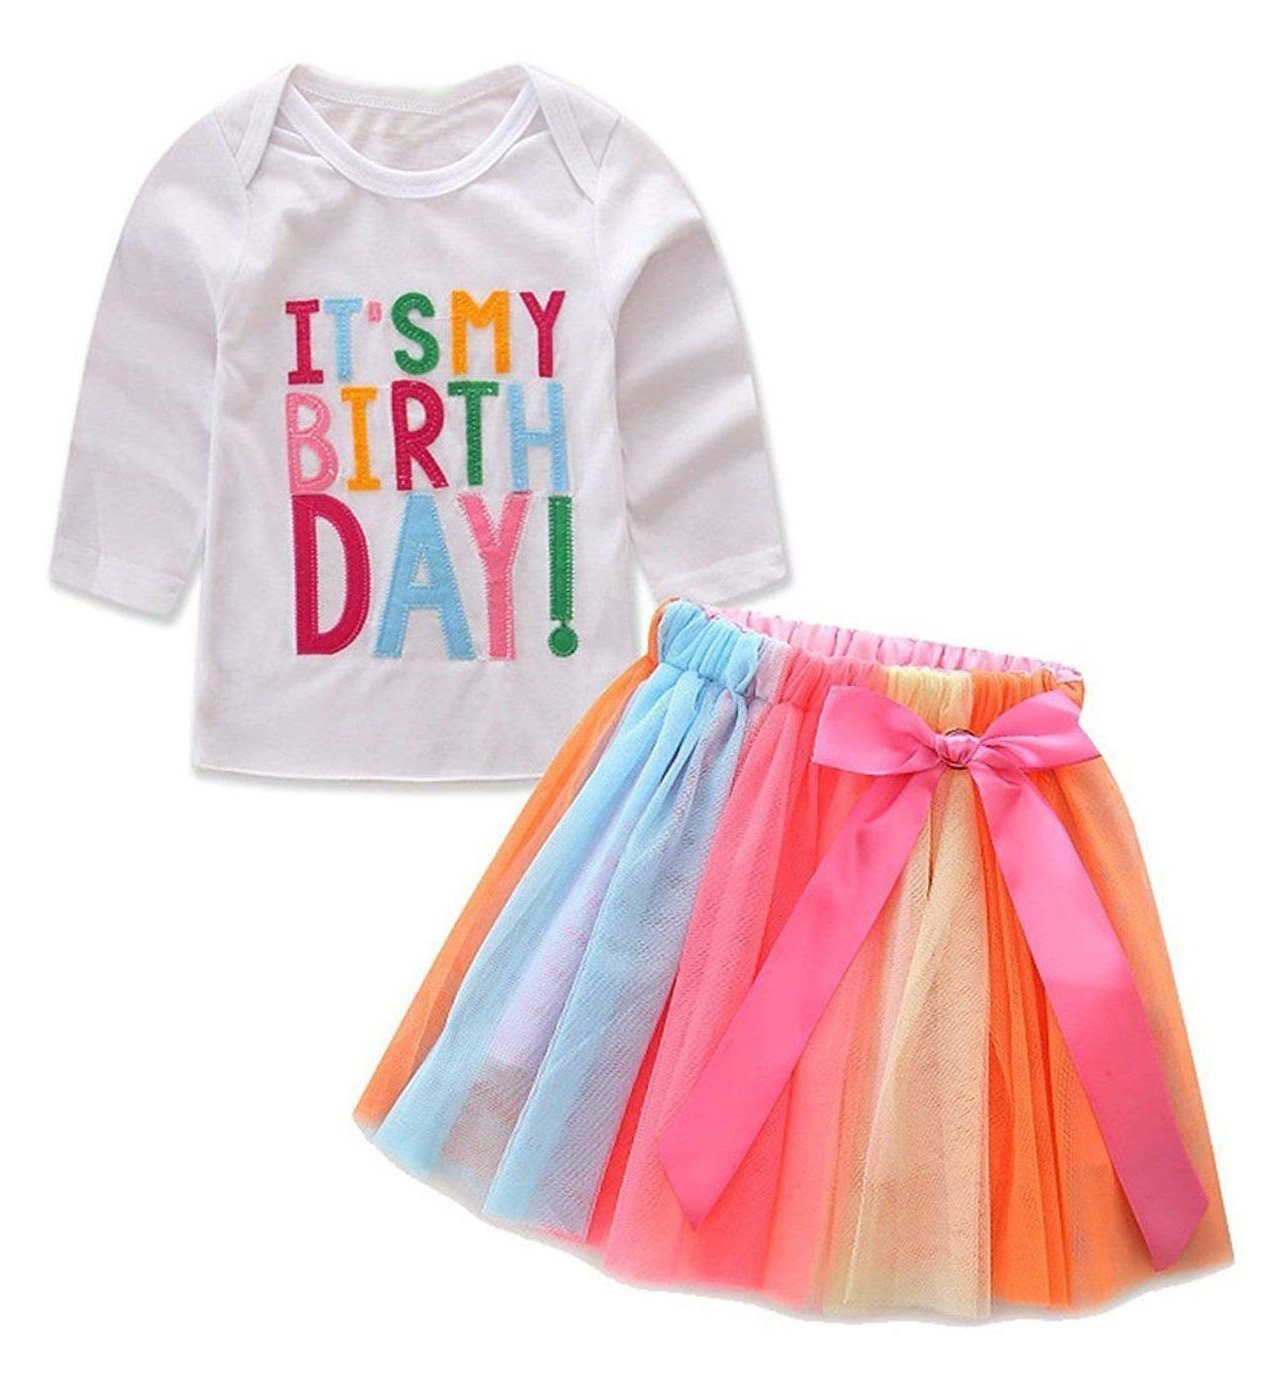 Baby Little Girls Letters T-Shirt + Colorful Rainbow Skirts Birthday Gift Outfits Set (White B, 4-5 T)